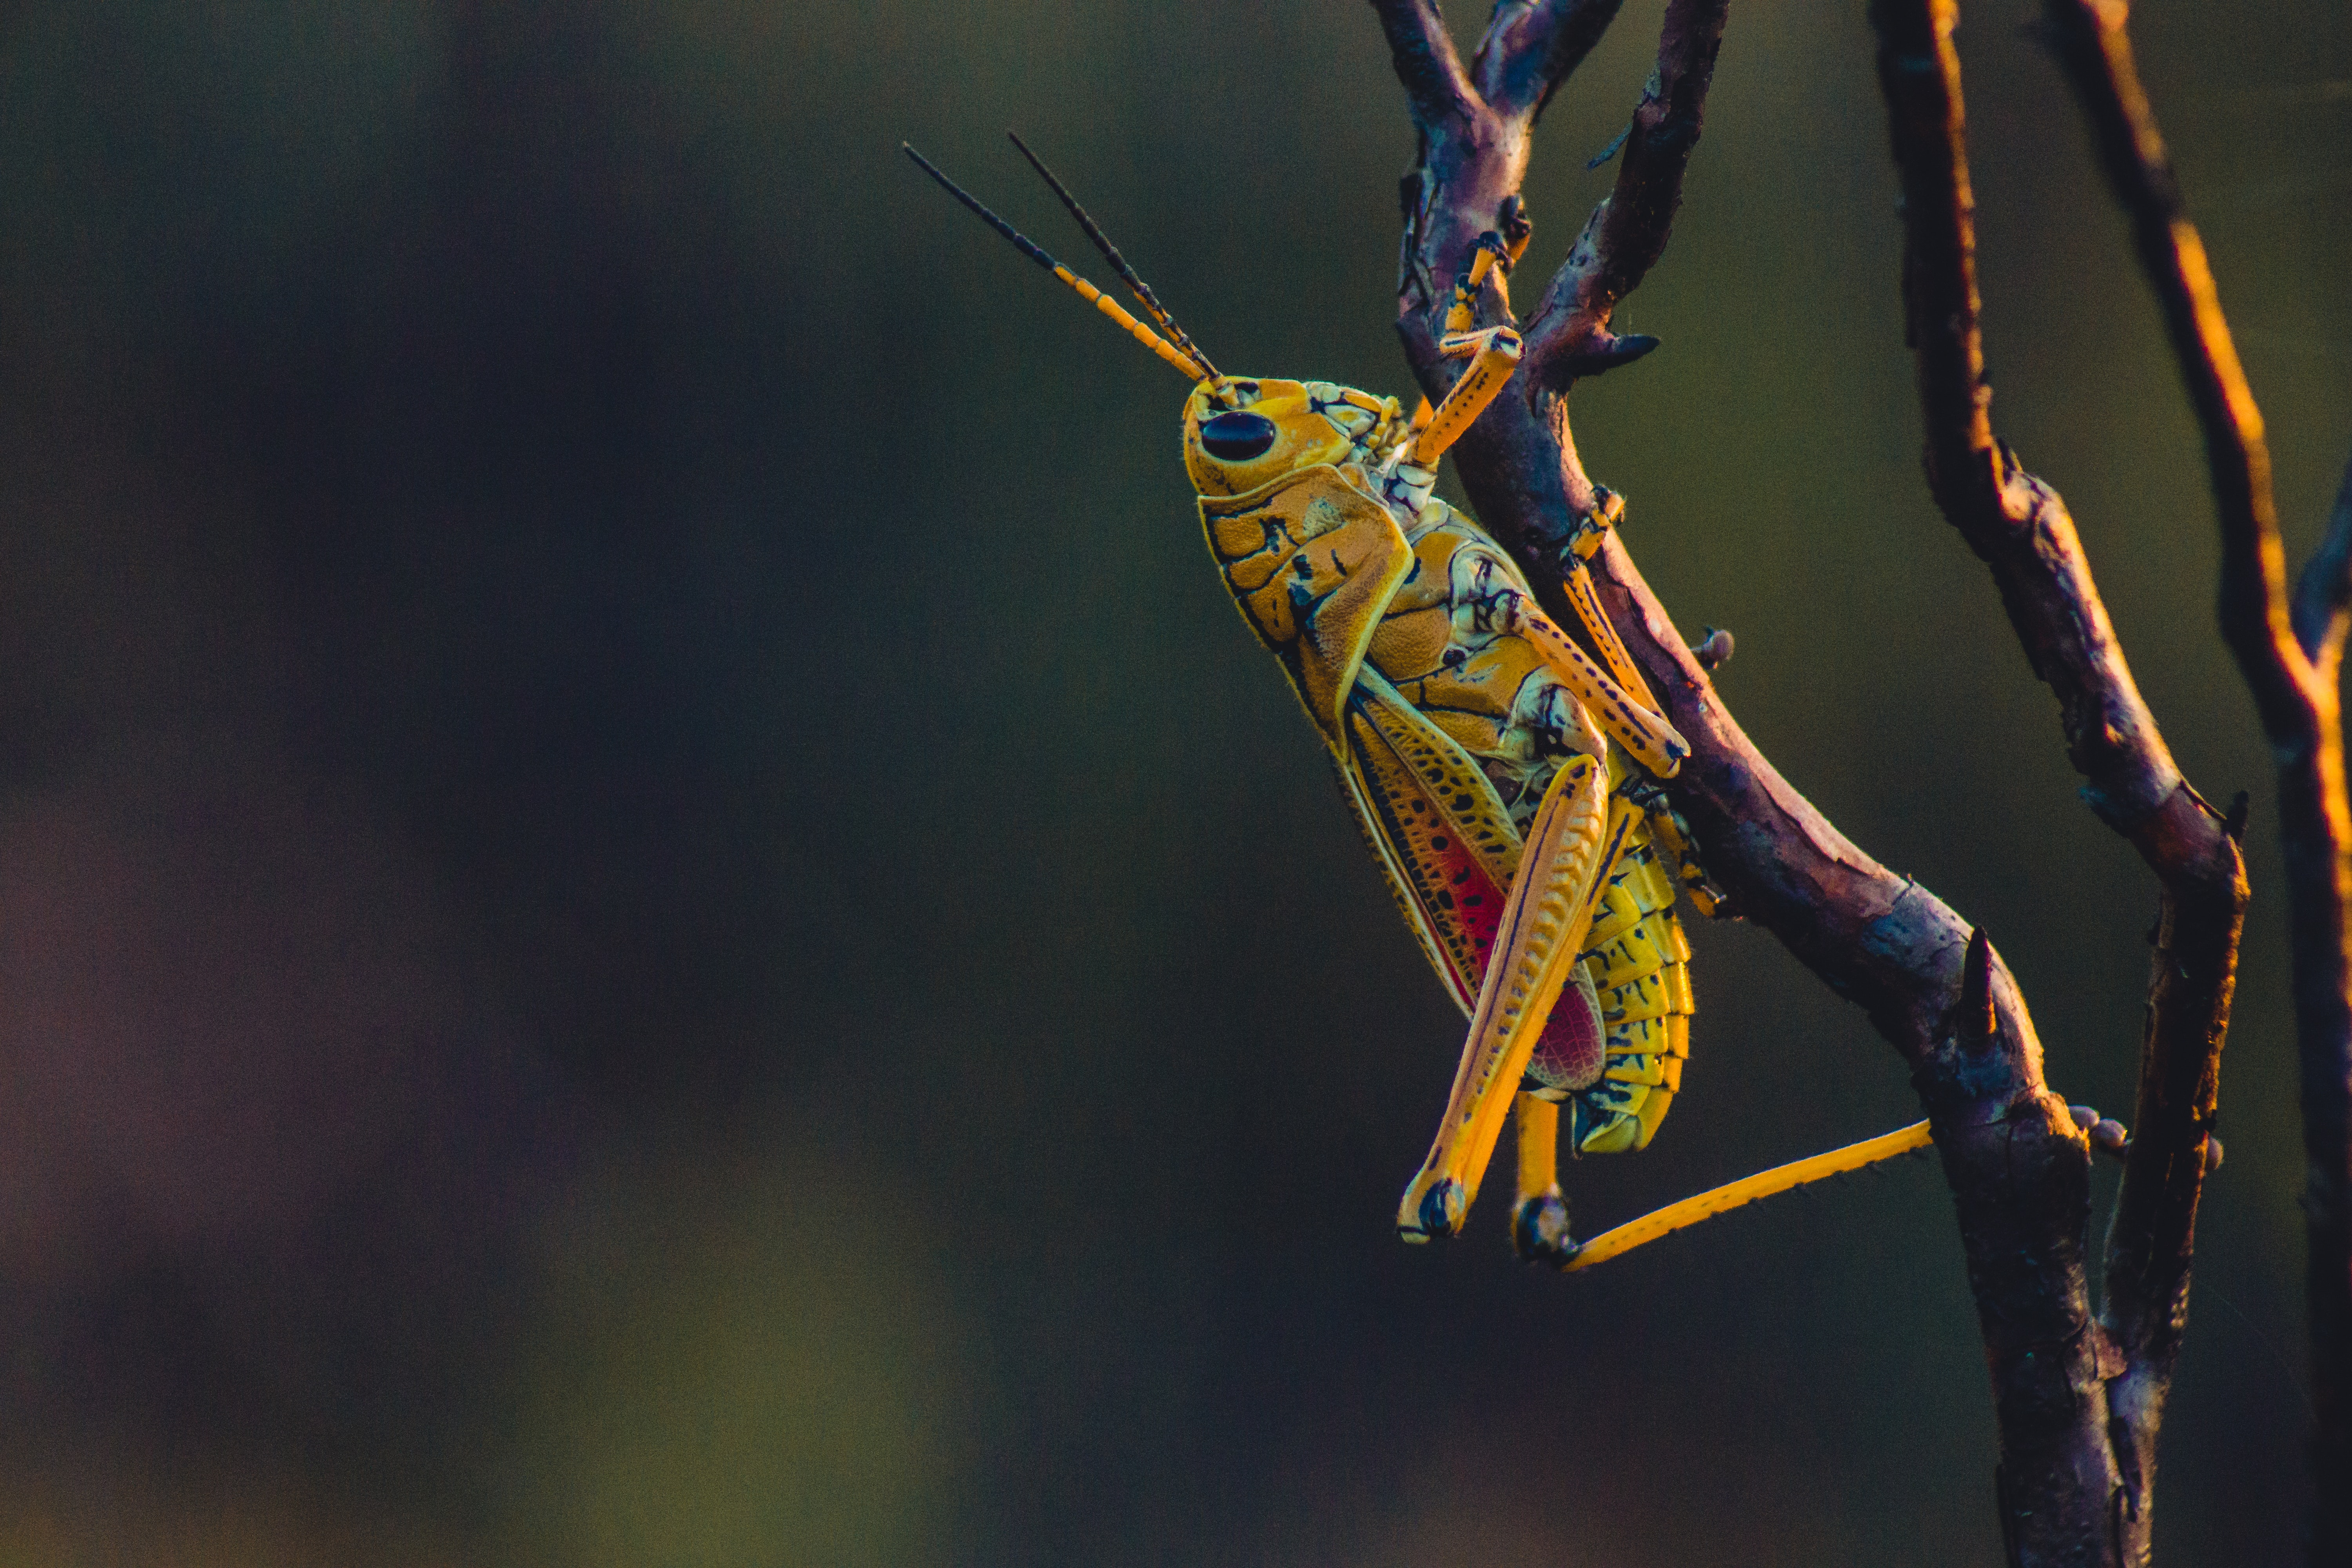 A close-up of a bright yellow grasshopper sitting on a branch